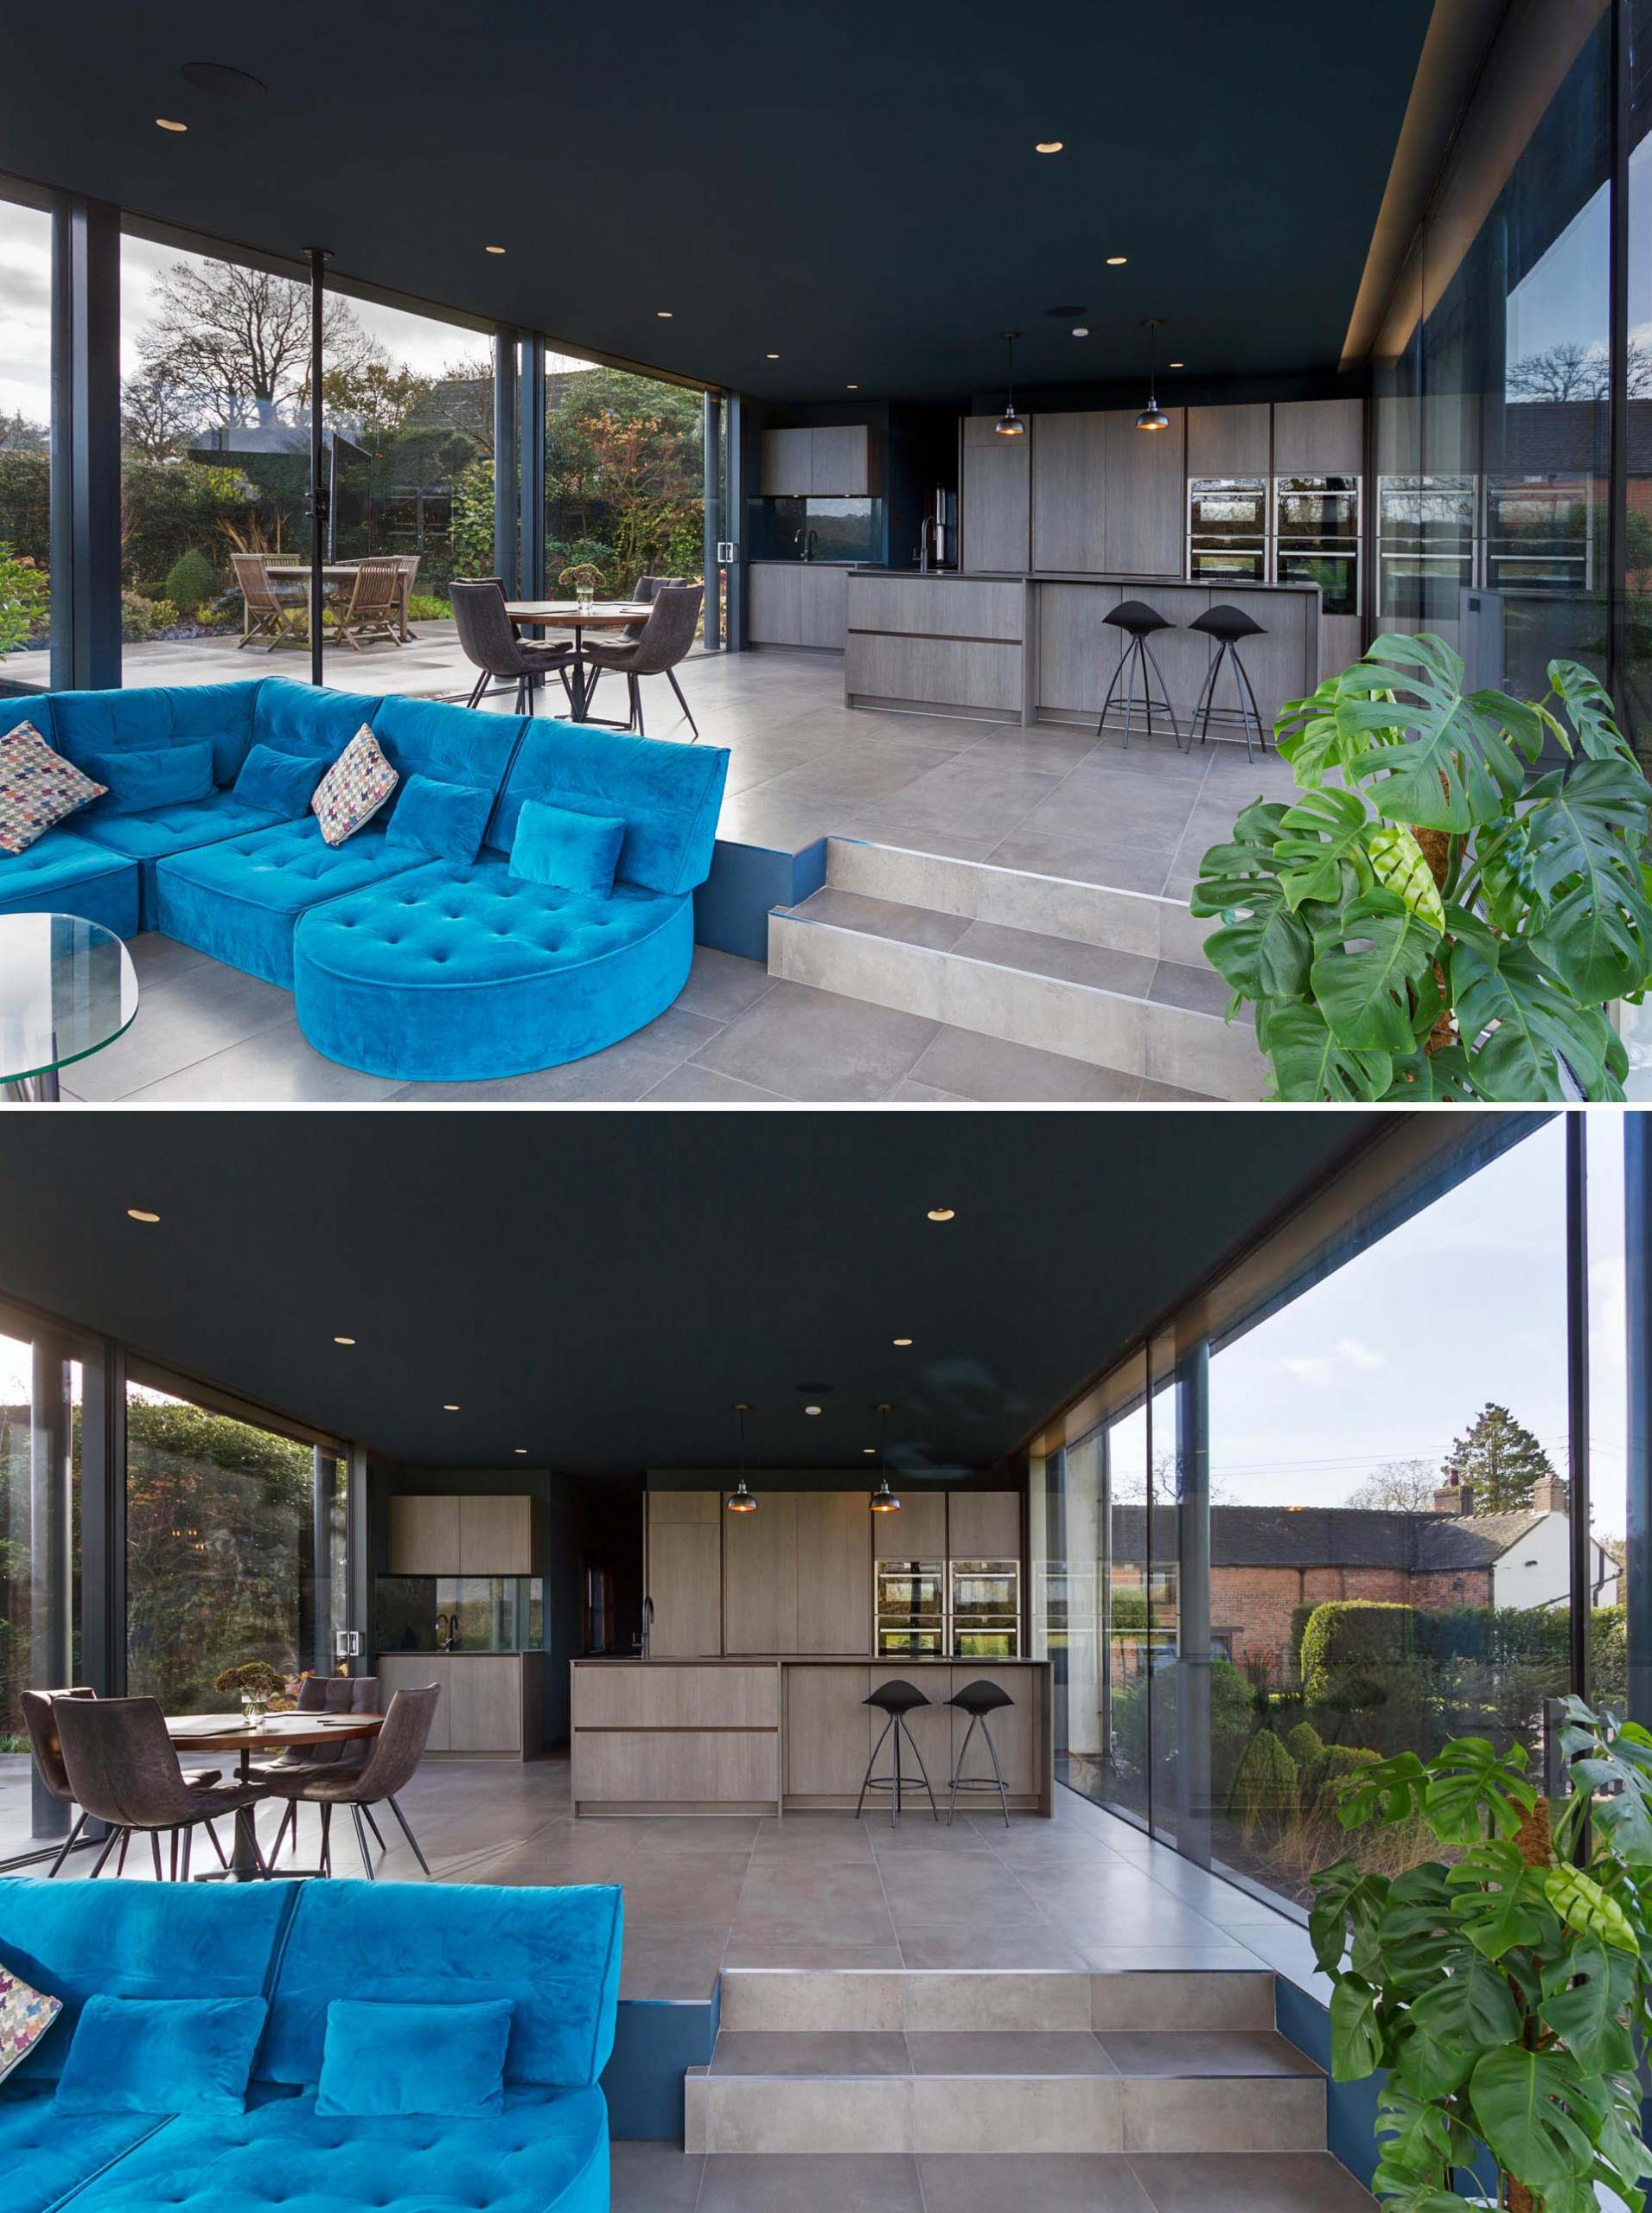 The modern interior of this addition includes a 1960's style split level living area away from the kitchen and dining area, creating a space to comfortably relax and enjoy the views of the garden day and night.